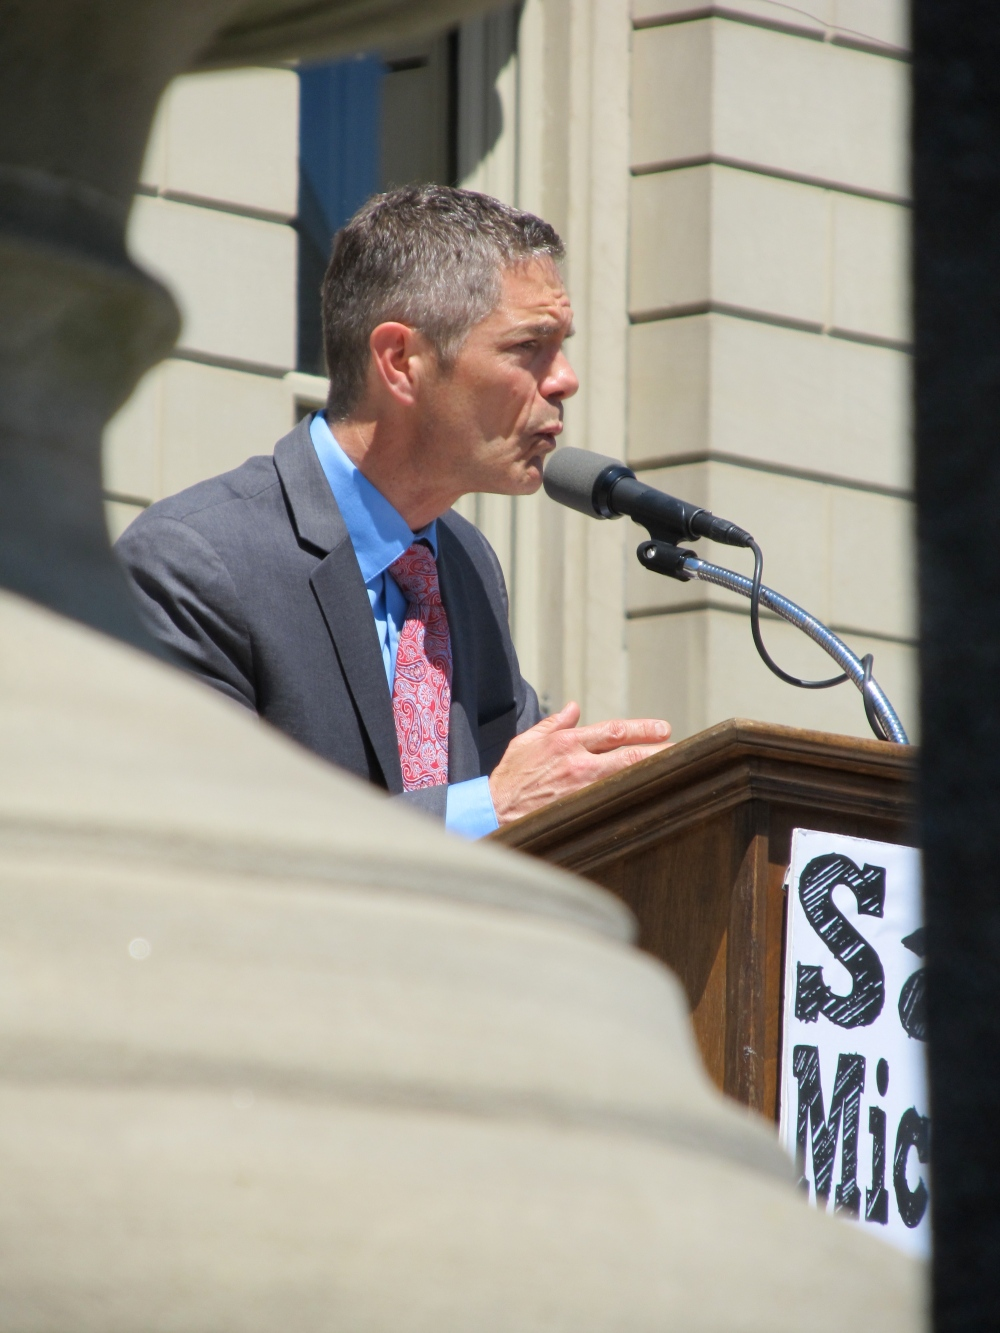 Democratic candidate for Governor, Mark Schauer, began the rally.